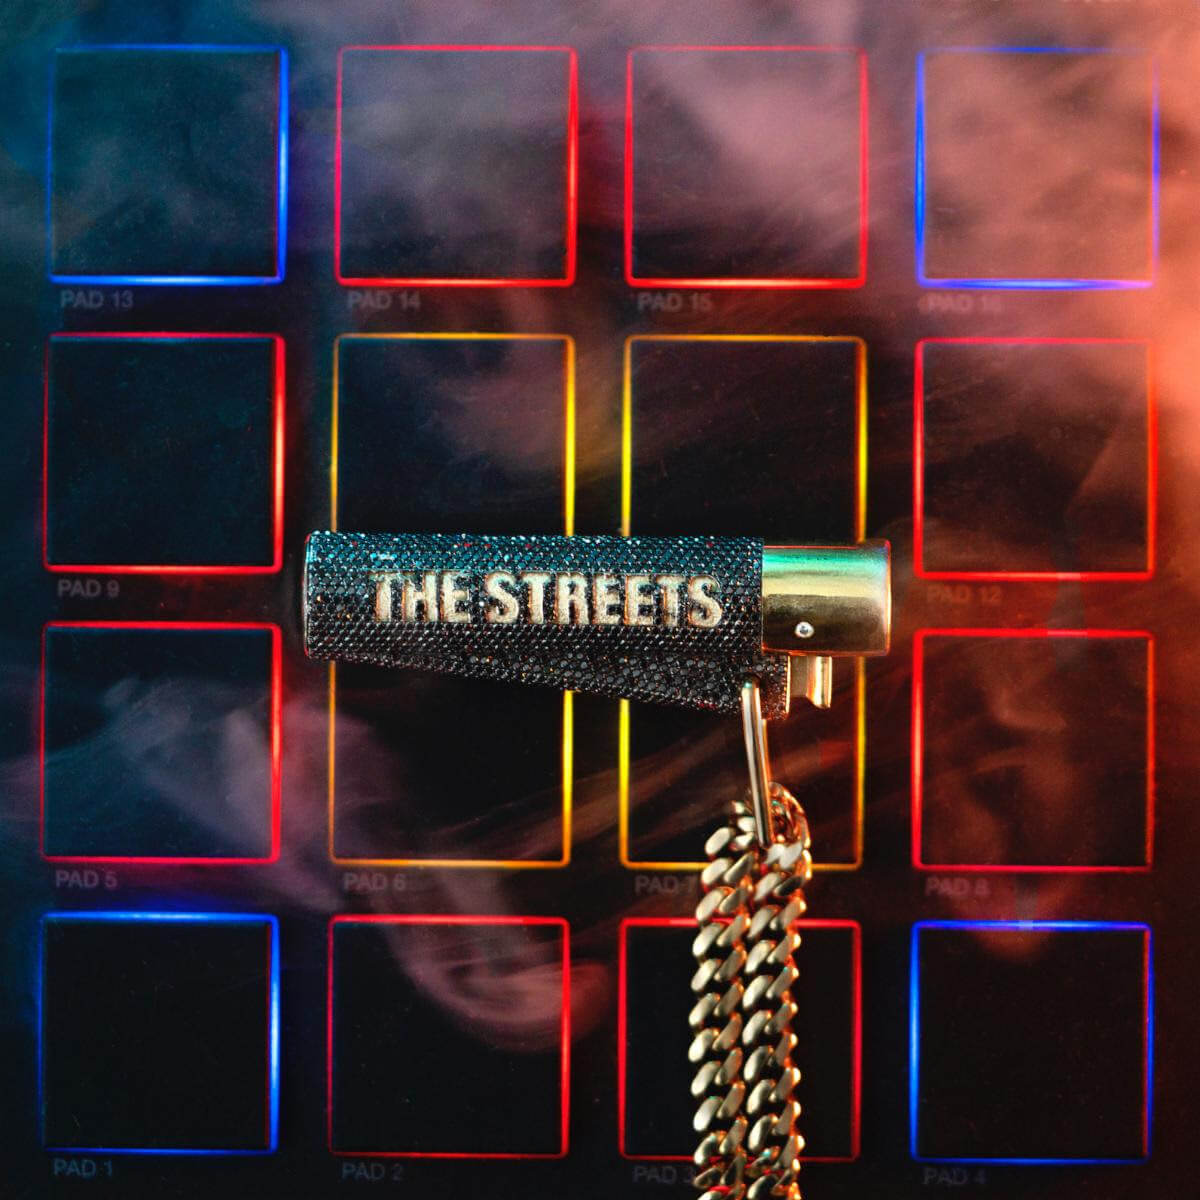 """The Streets Share new single """"Who's Got The Bag"""" via Island Records. Mike says, """"It's been too long since I've been behind some decks"""